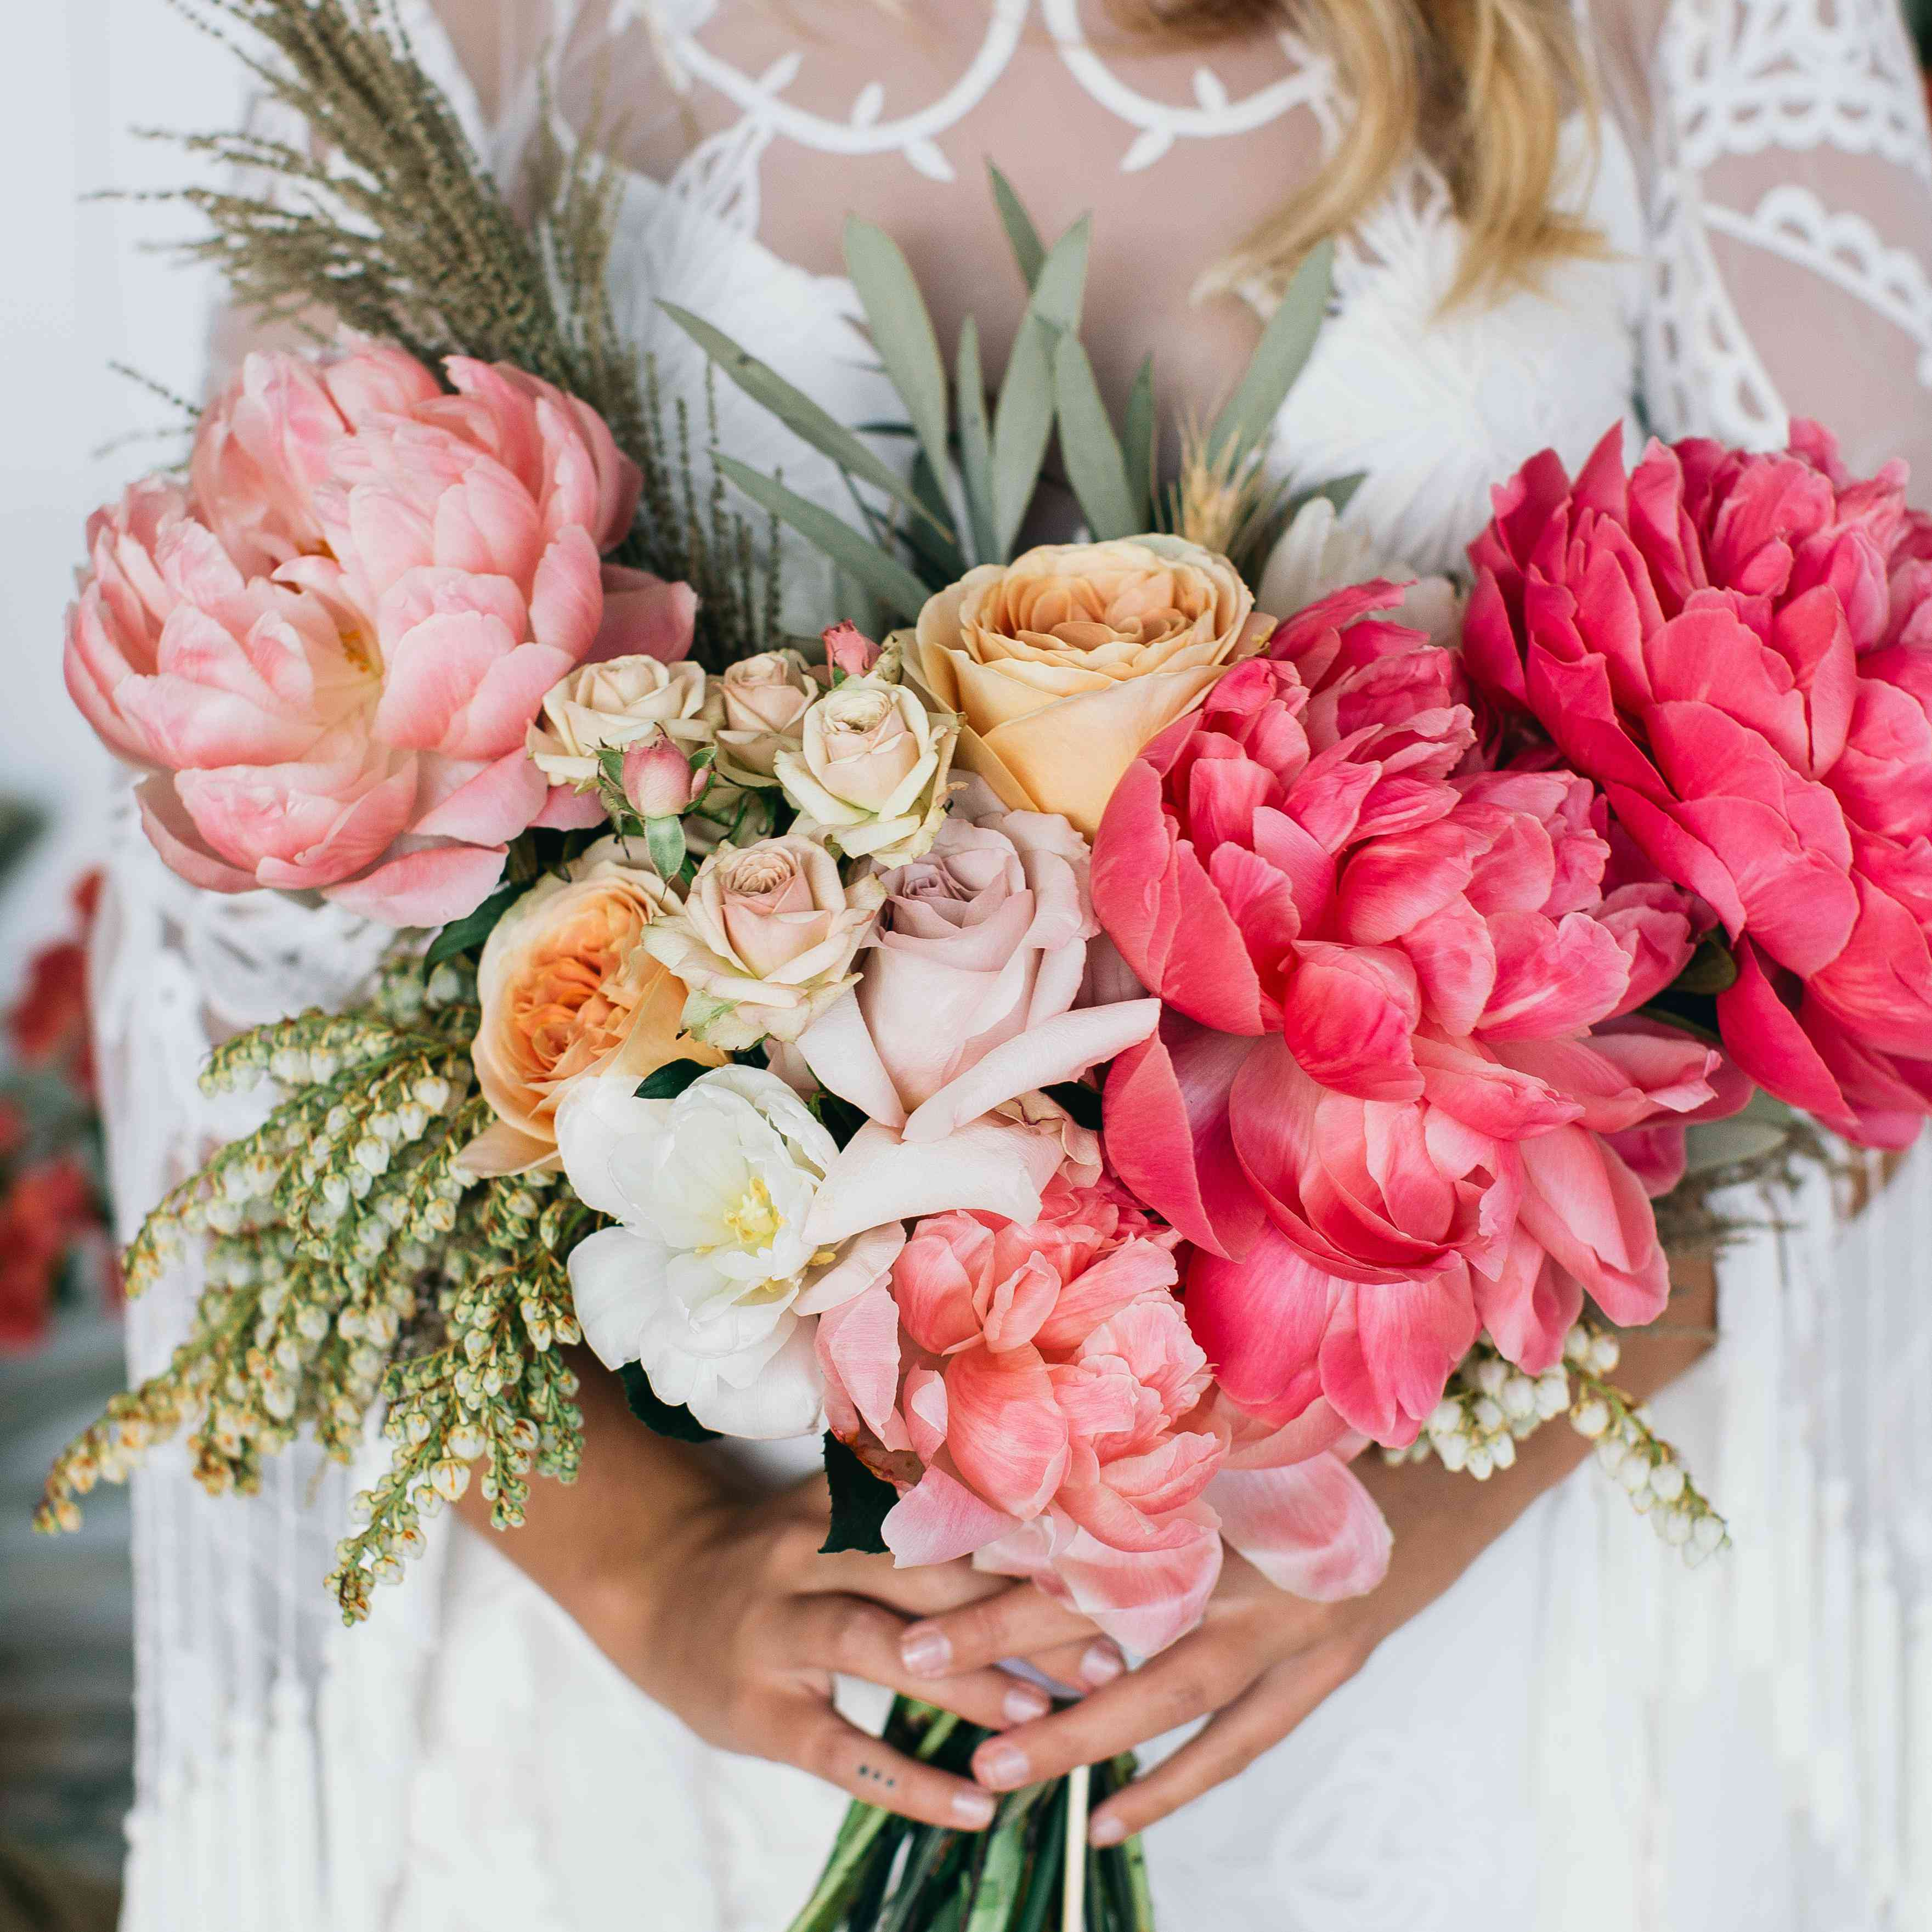 Low Budget Wedding Flowers: 40 Perfect Peony Wedding Bouquets